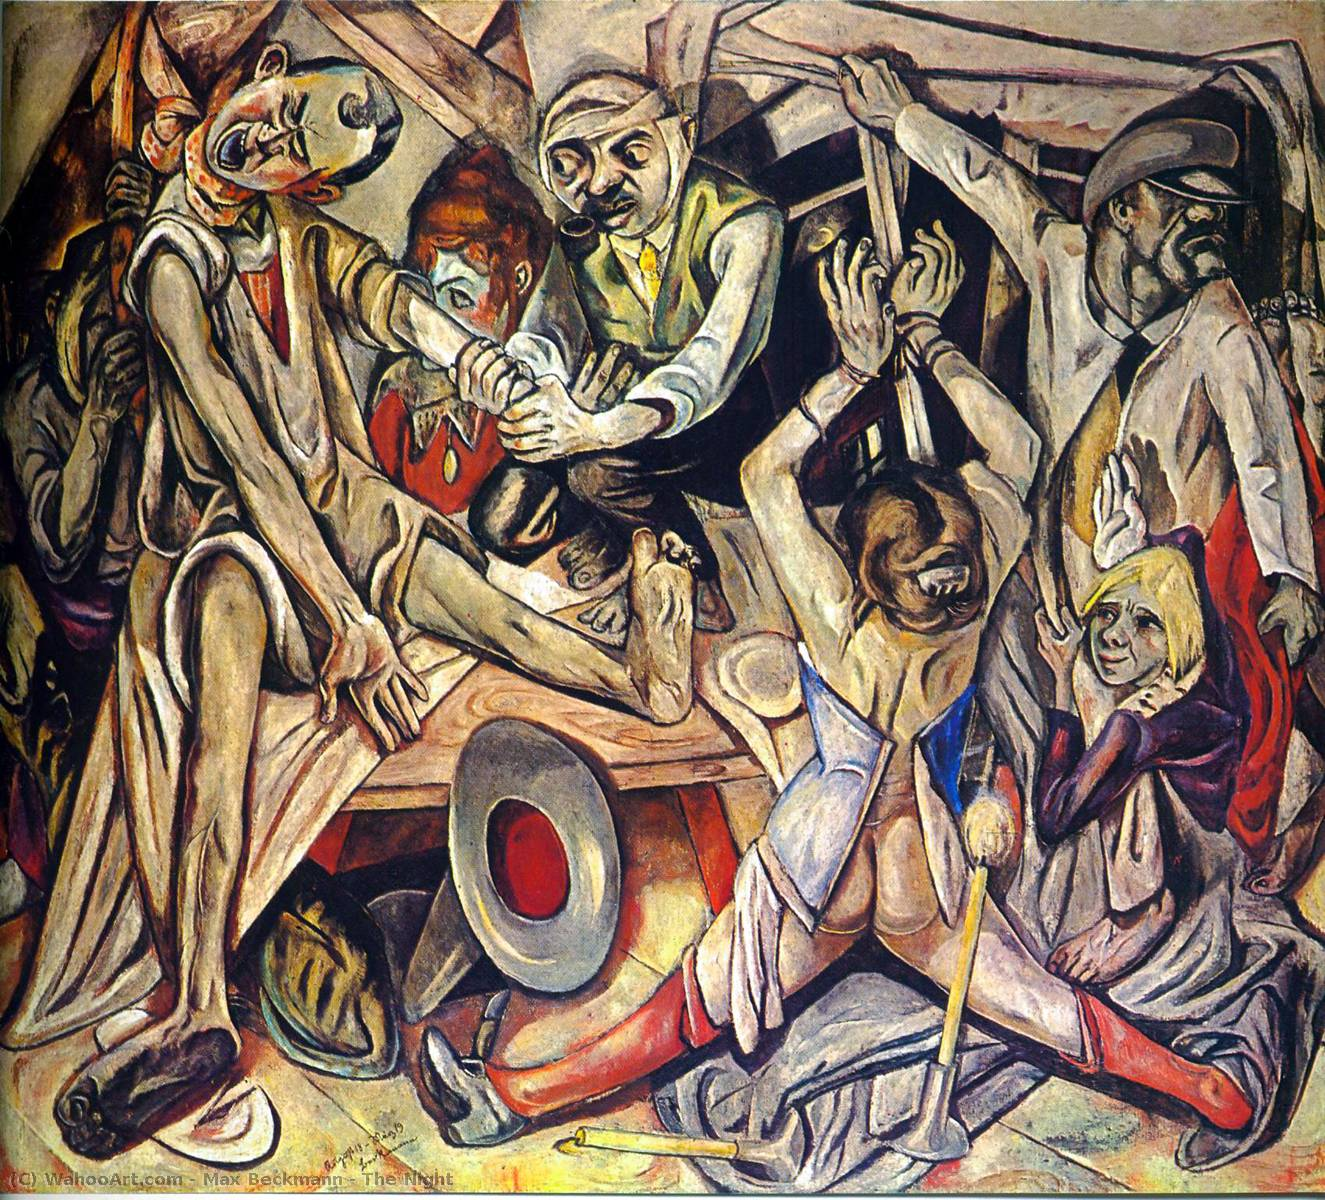 famous painting el noche of Max Beckmann